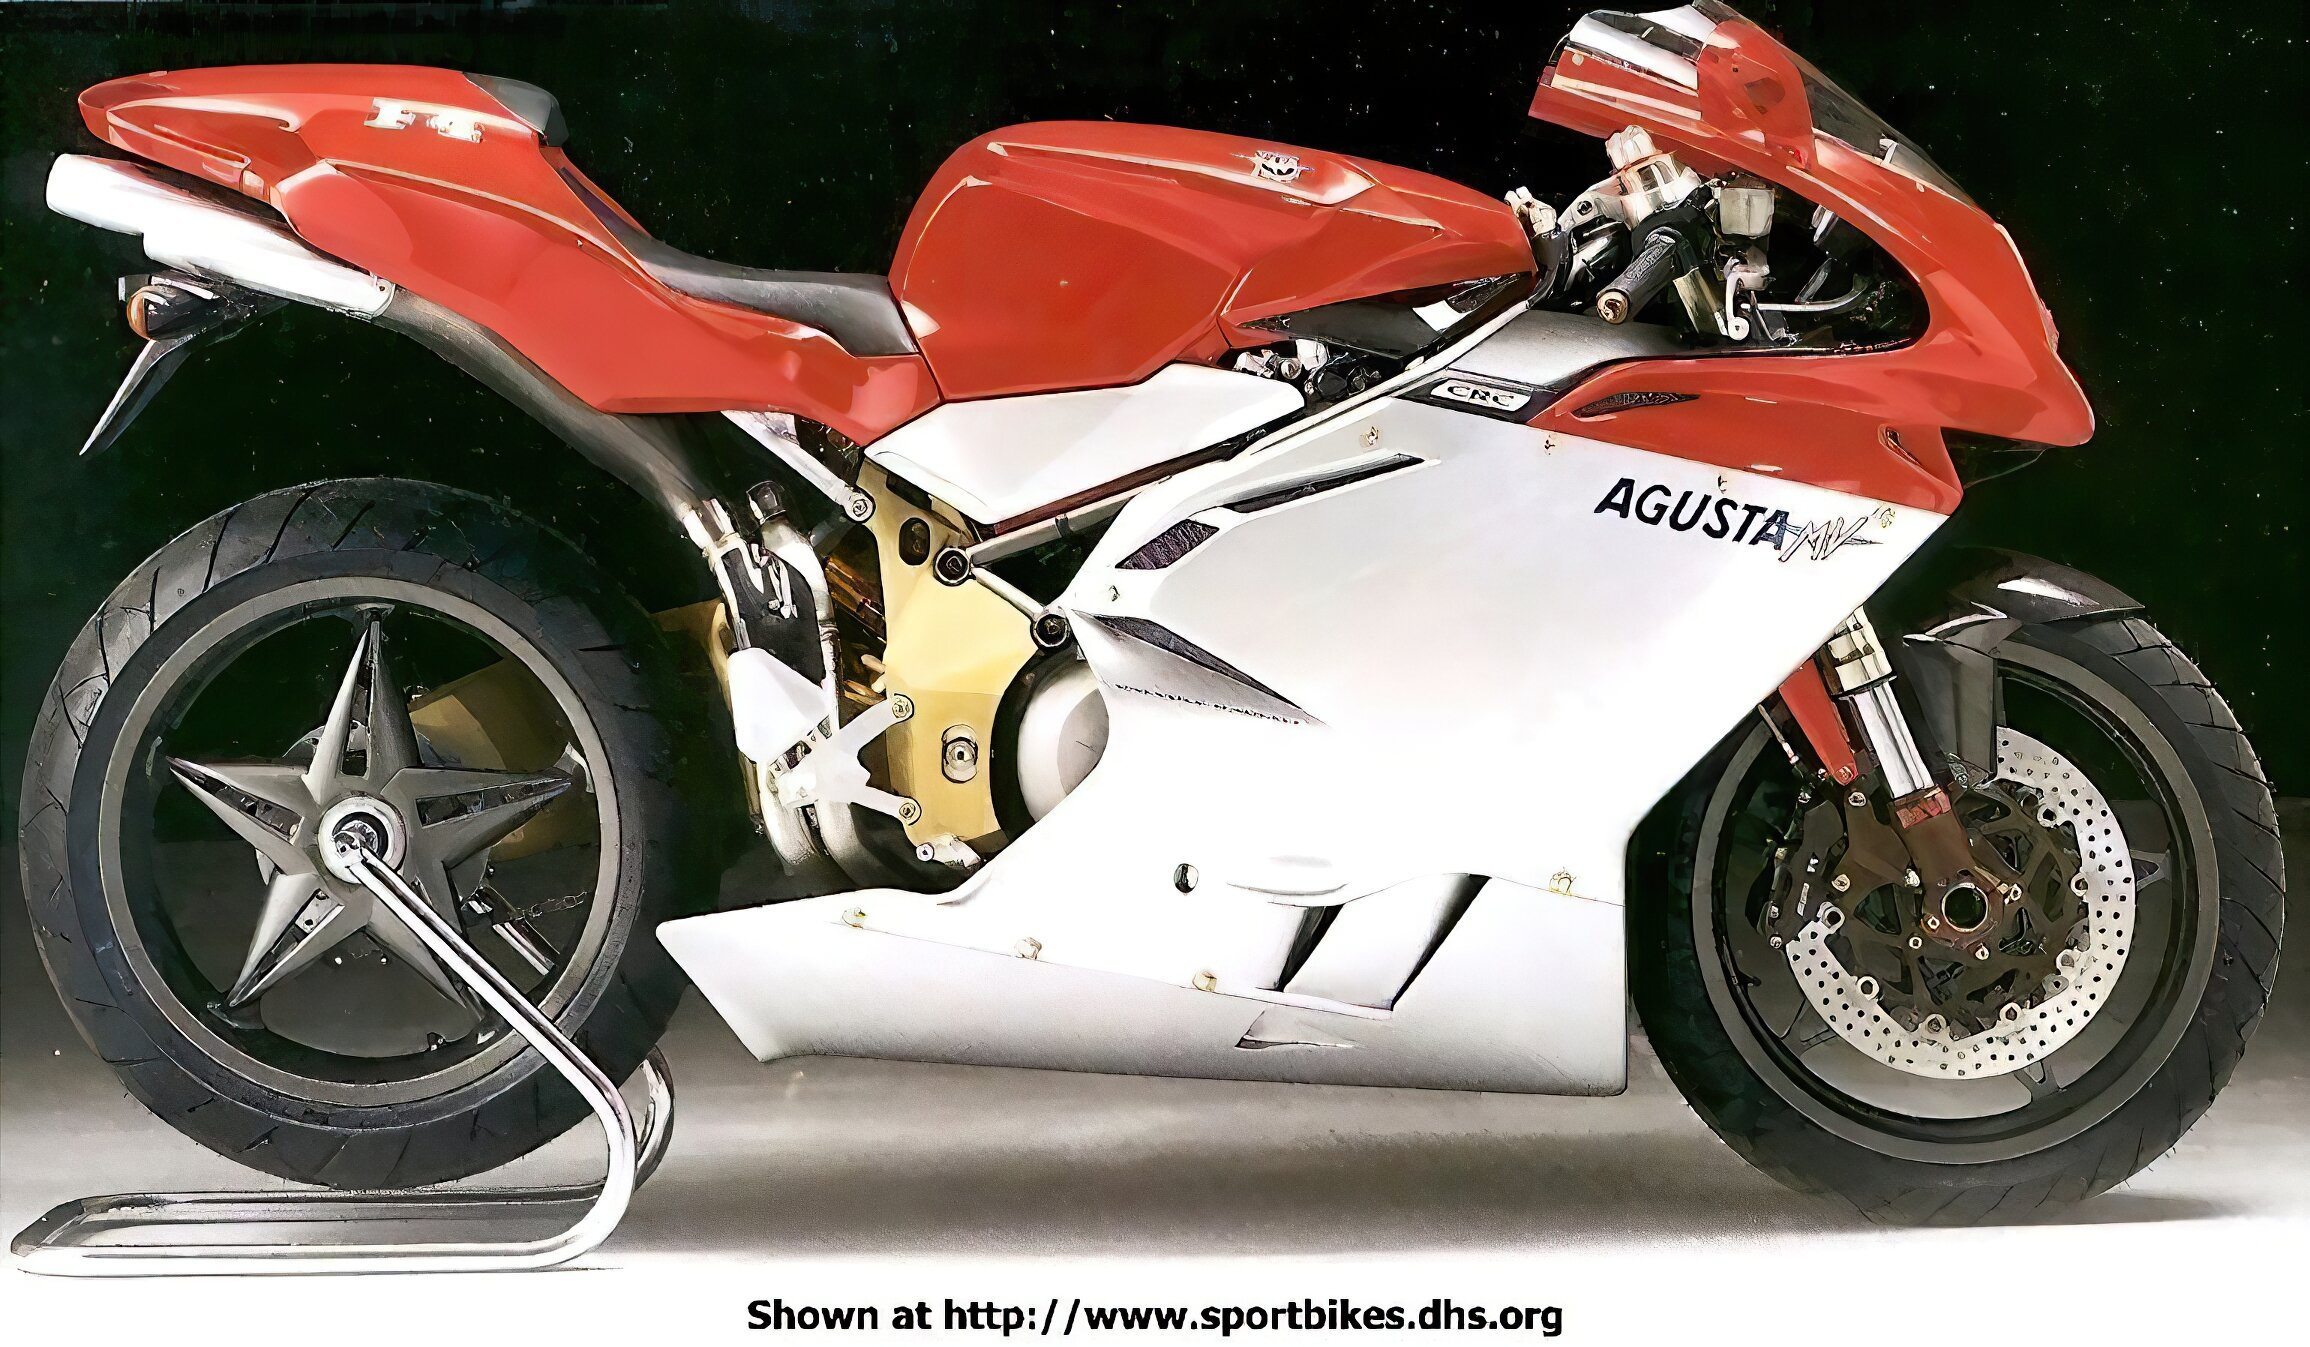 MV Agusta (all models) - ID: 824